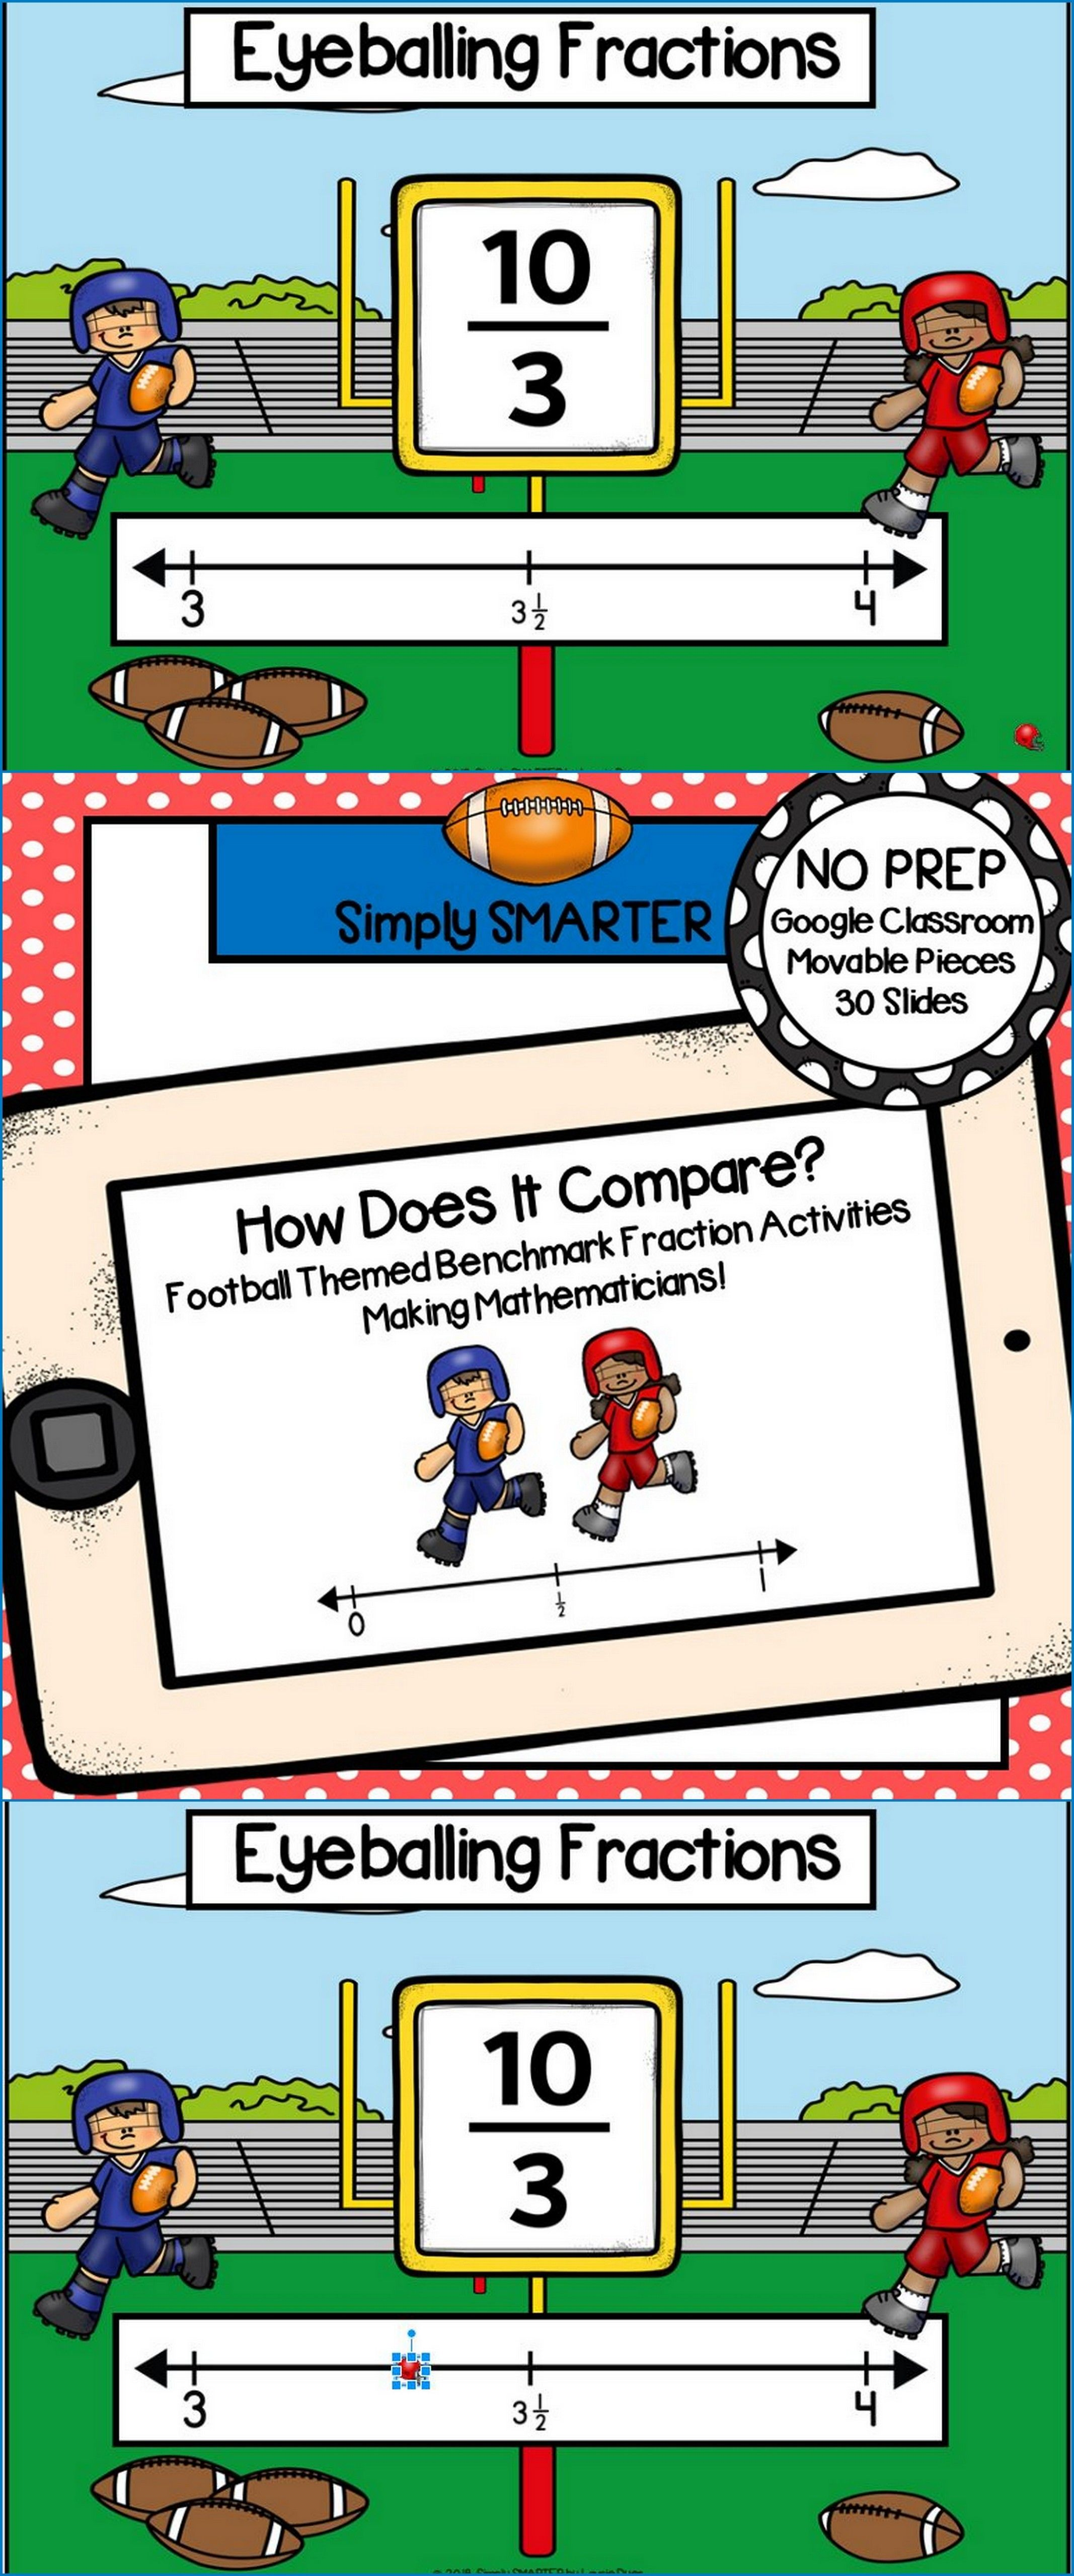 Football Themed Benchmark Fraction Activities For